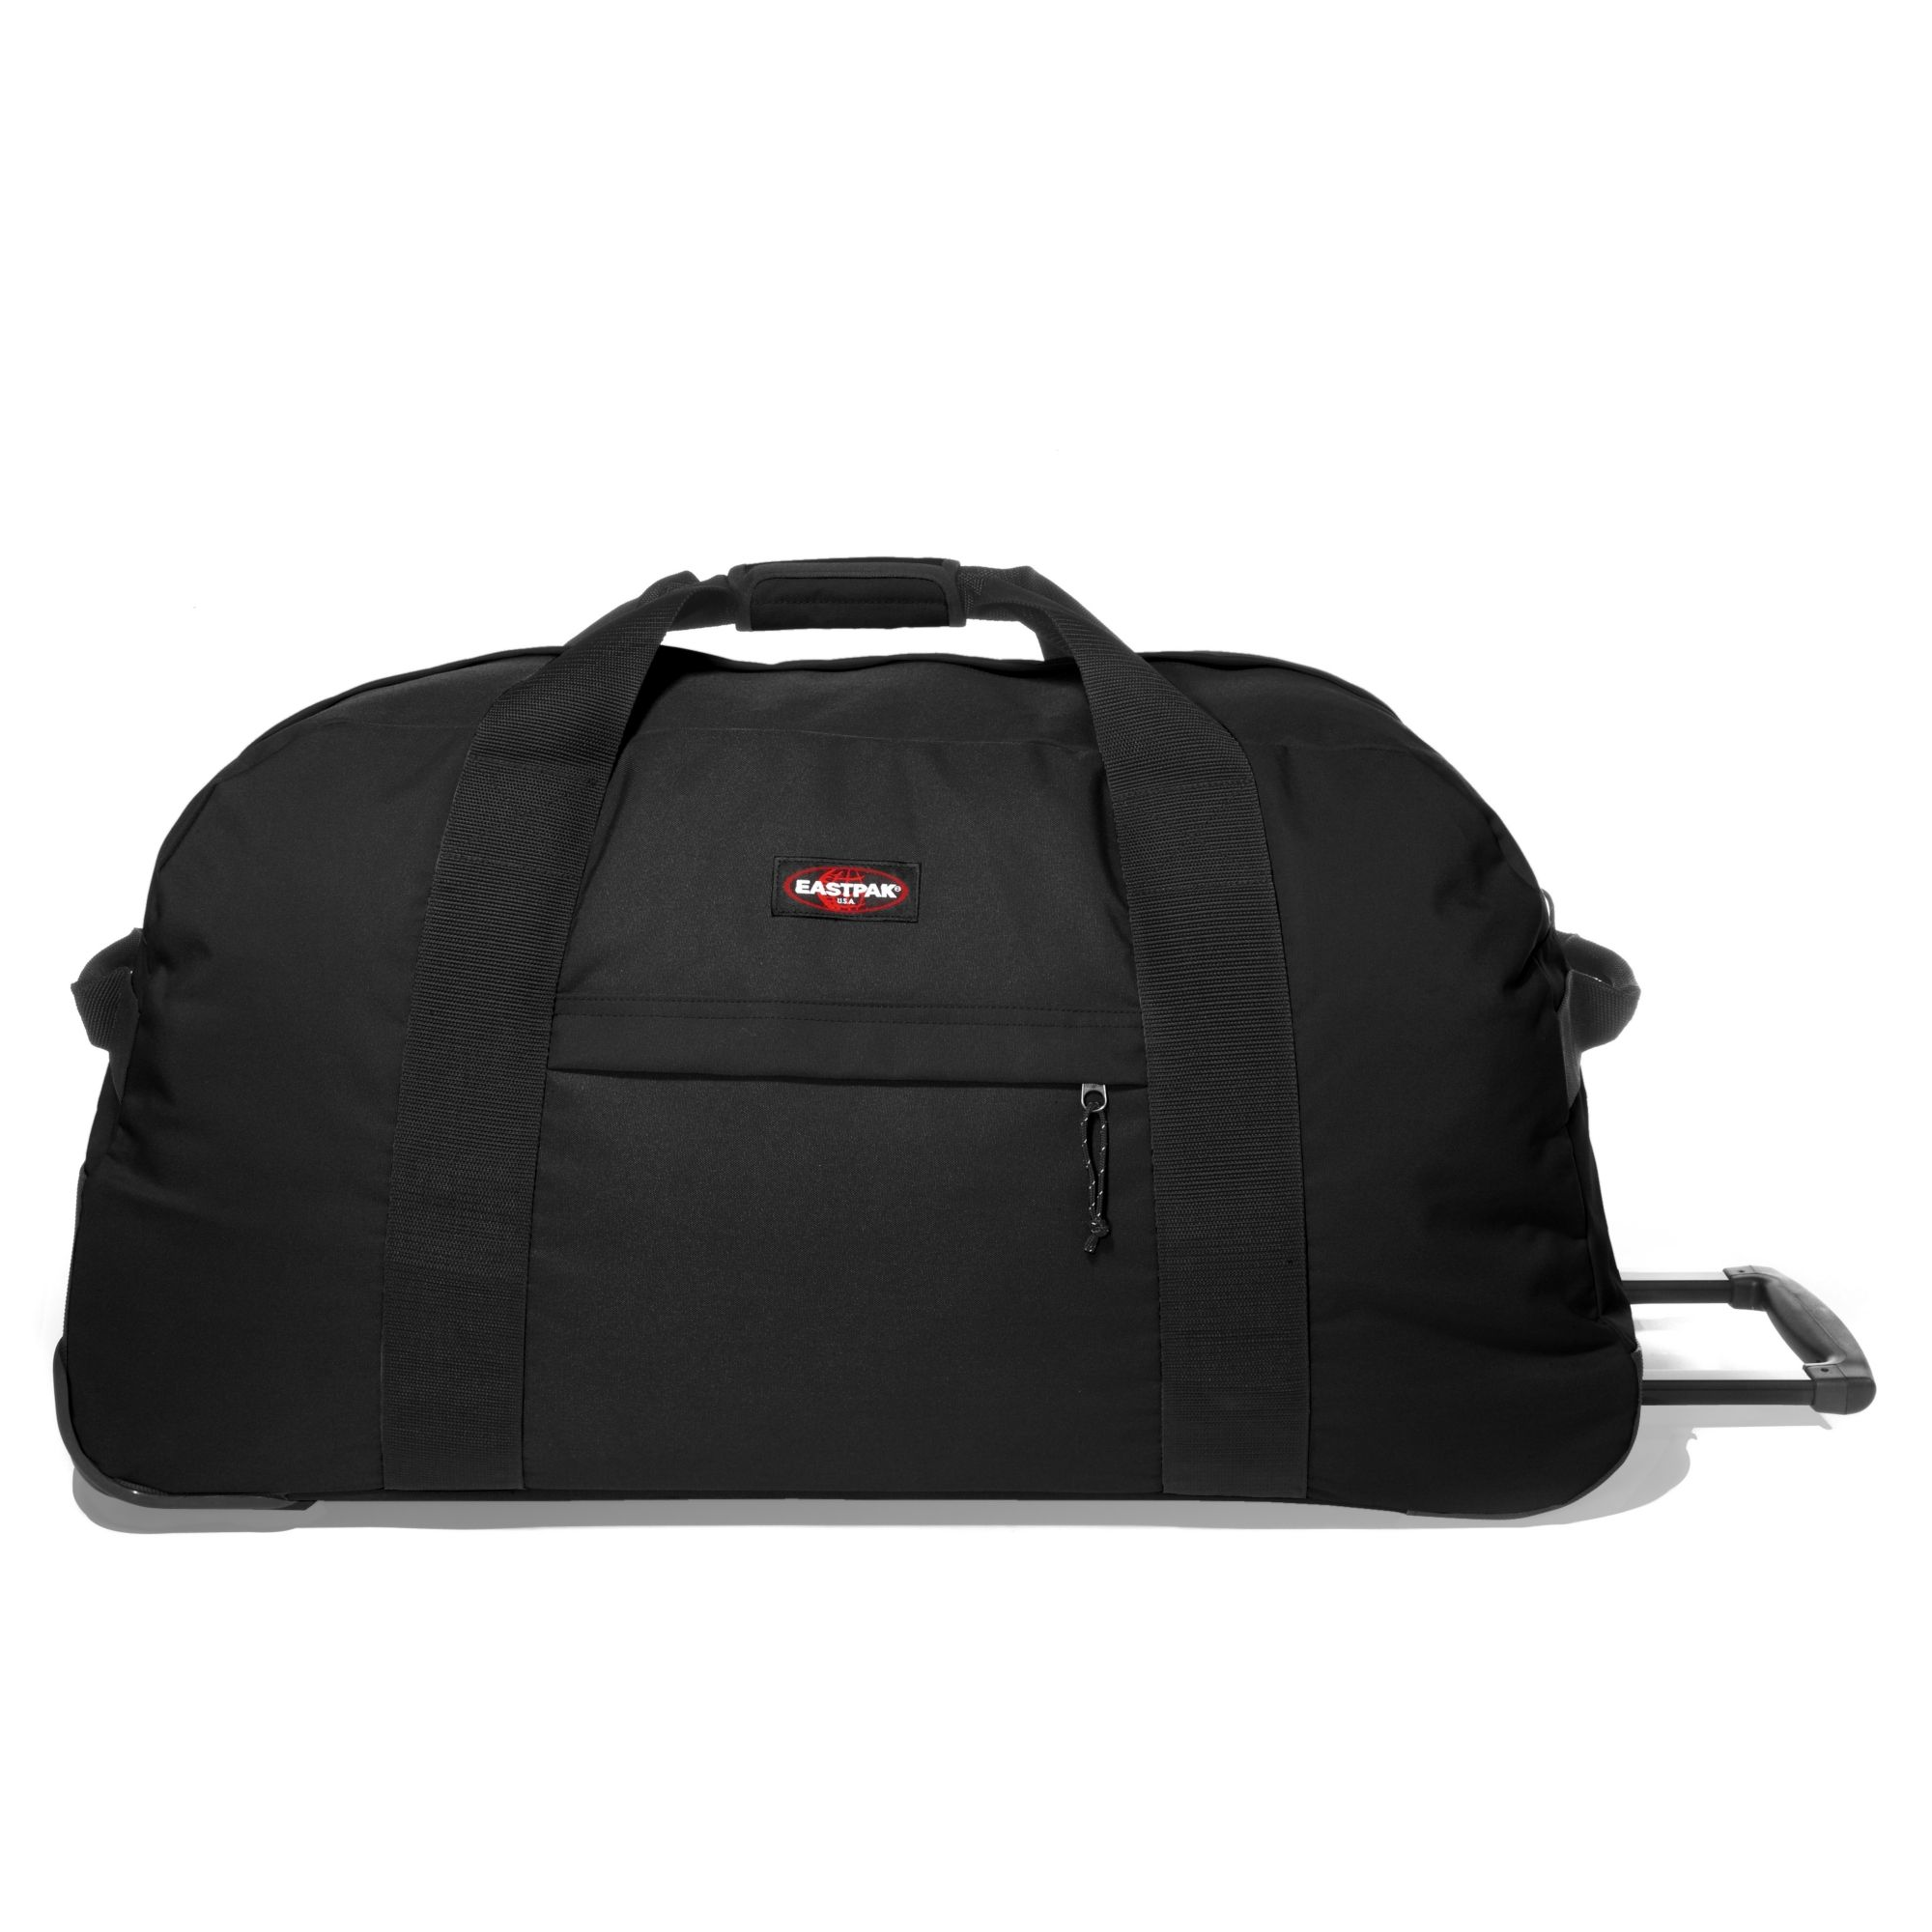 Authentic Container 65 wheeled duffle black